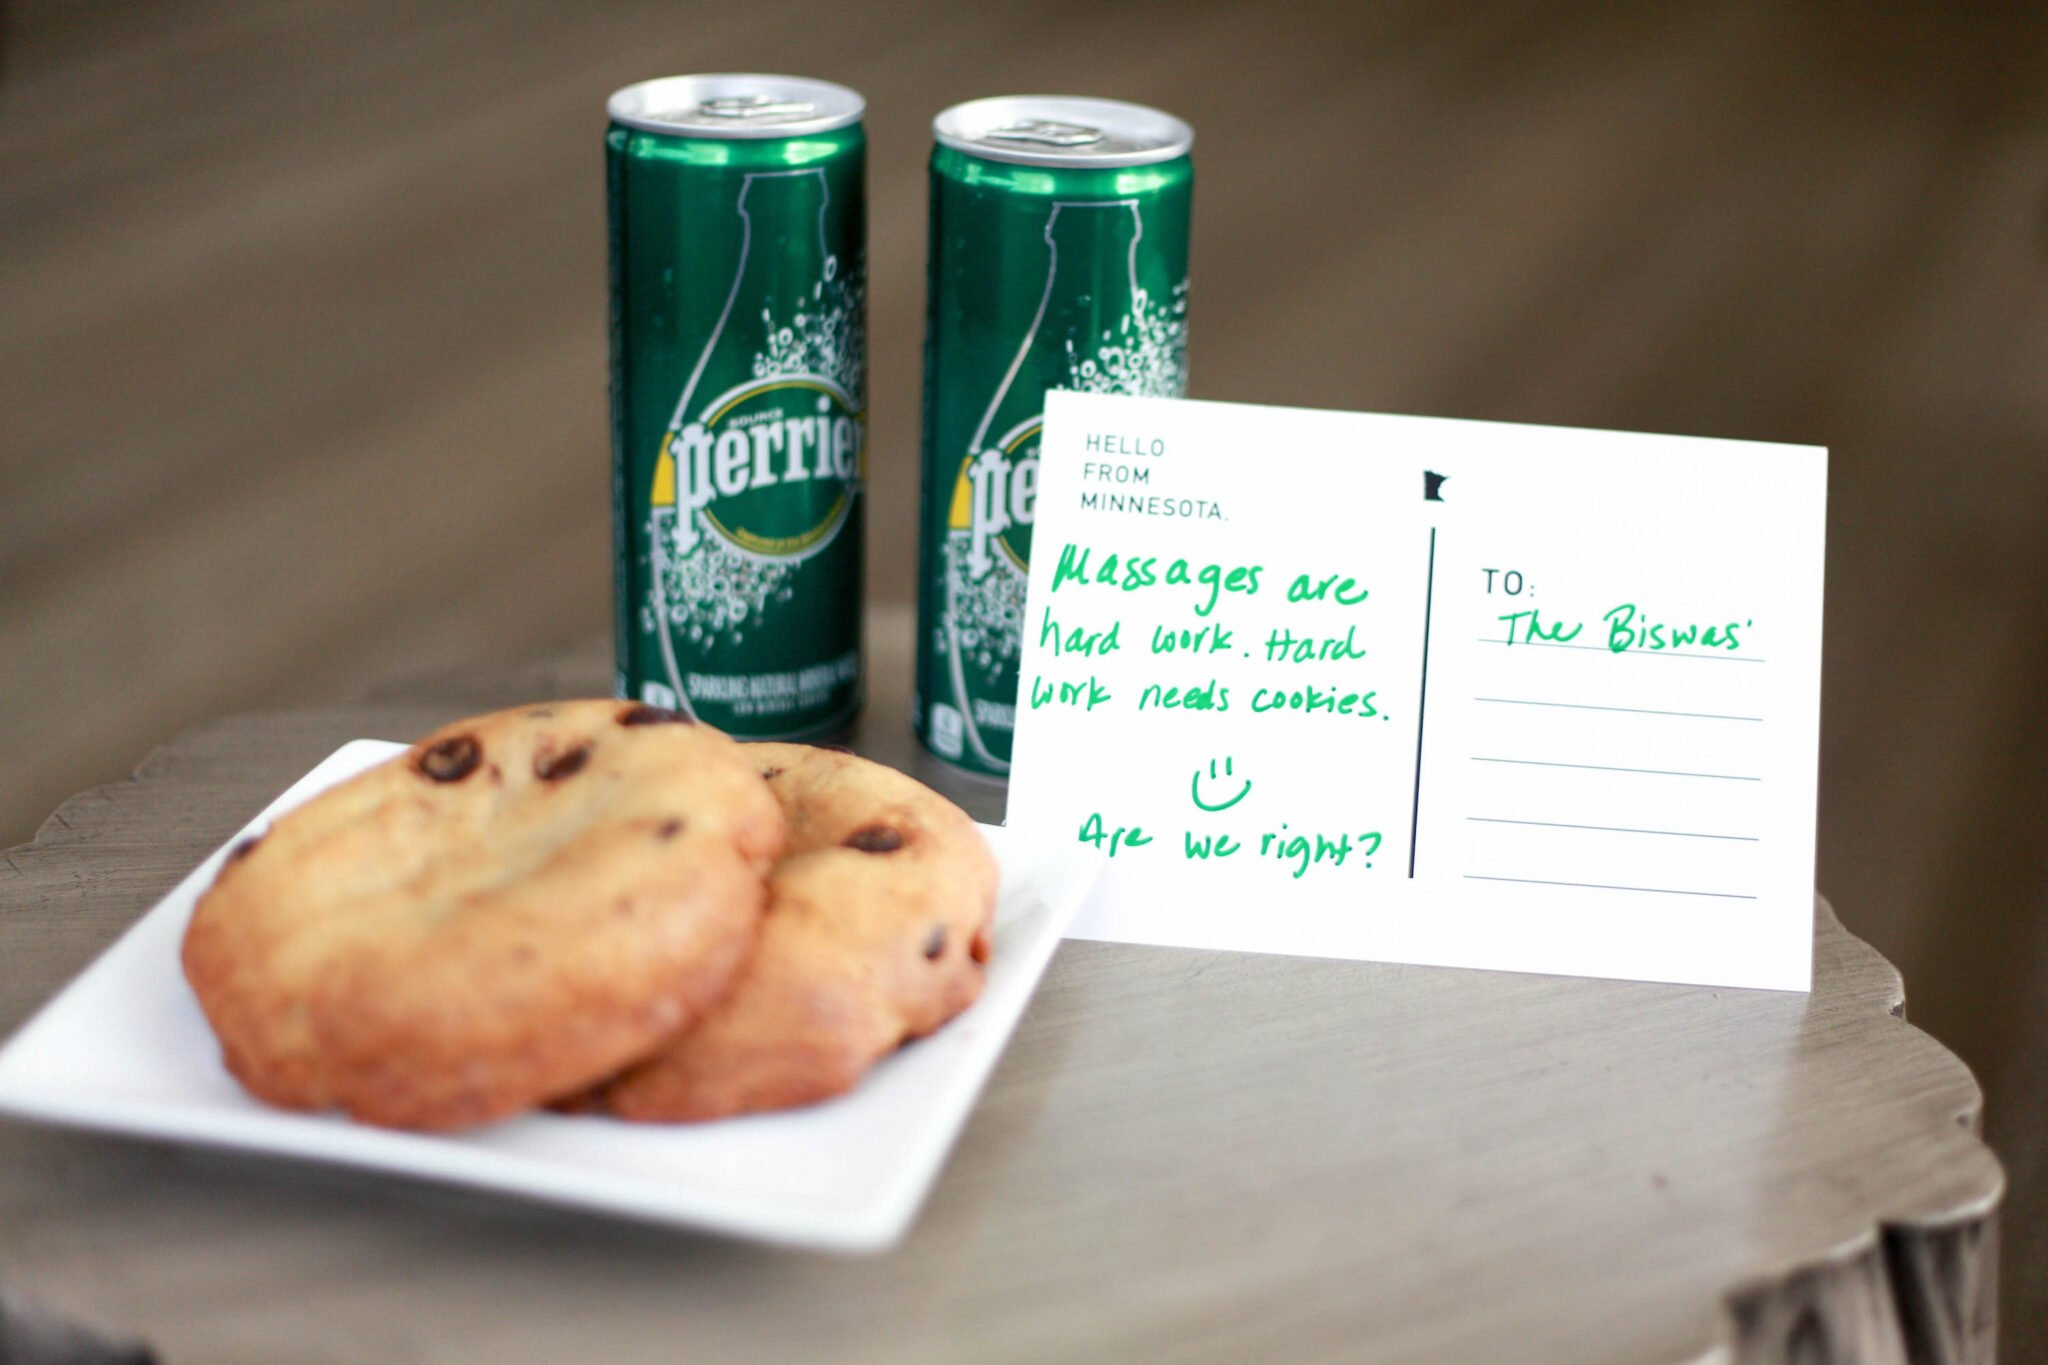 perrier and cookies at grand hotel.jpg